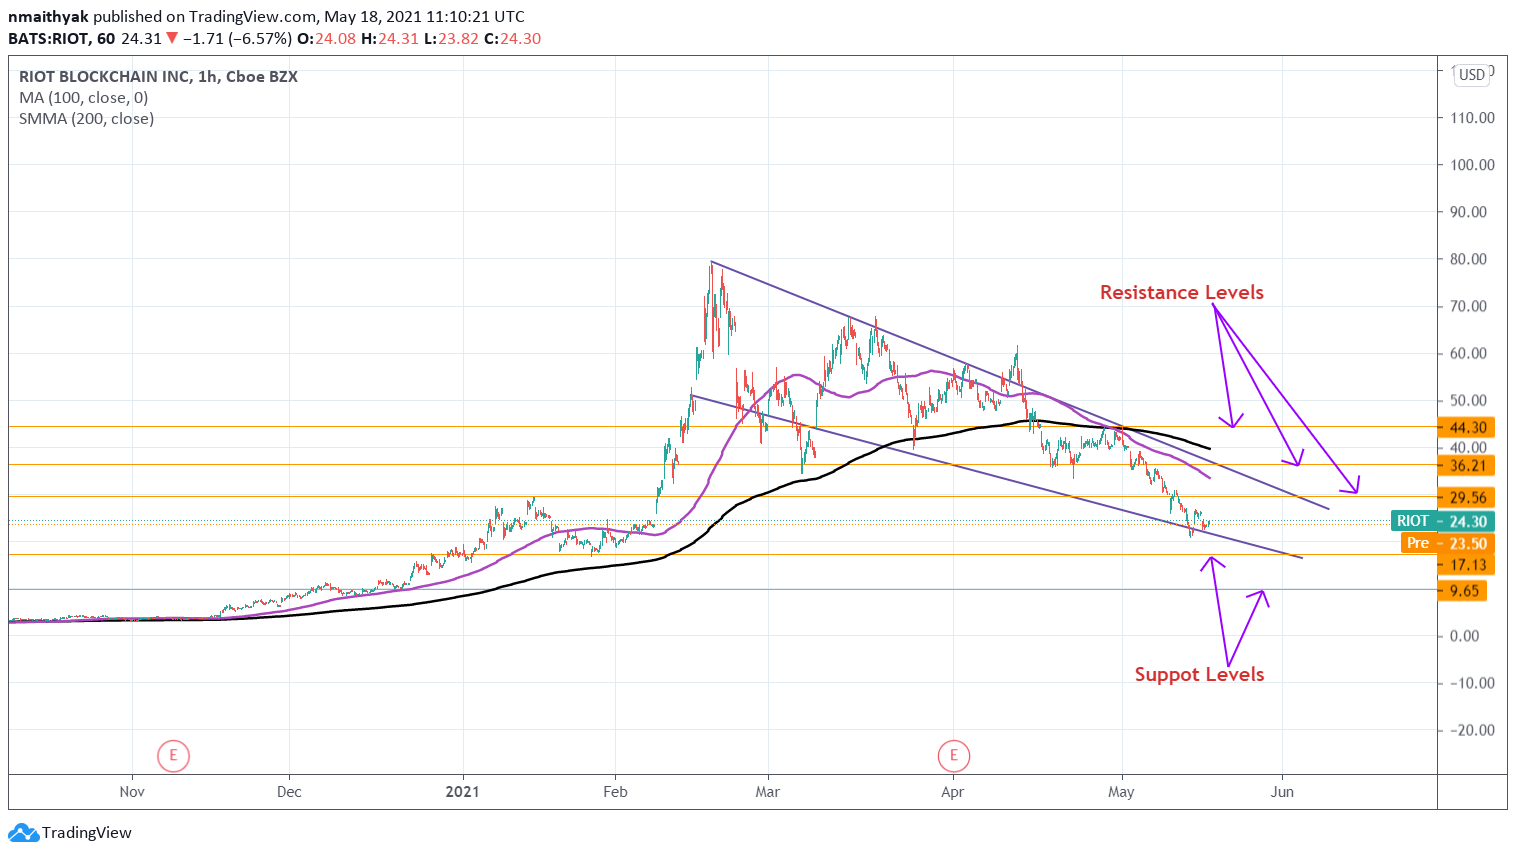 What is the better Bitcoin stock to buy now: Riot Blockchain or Marathon Digital? 2021